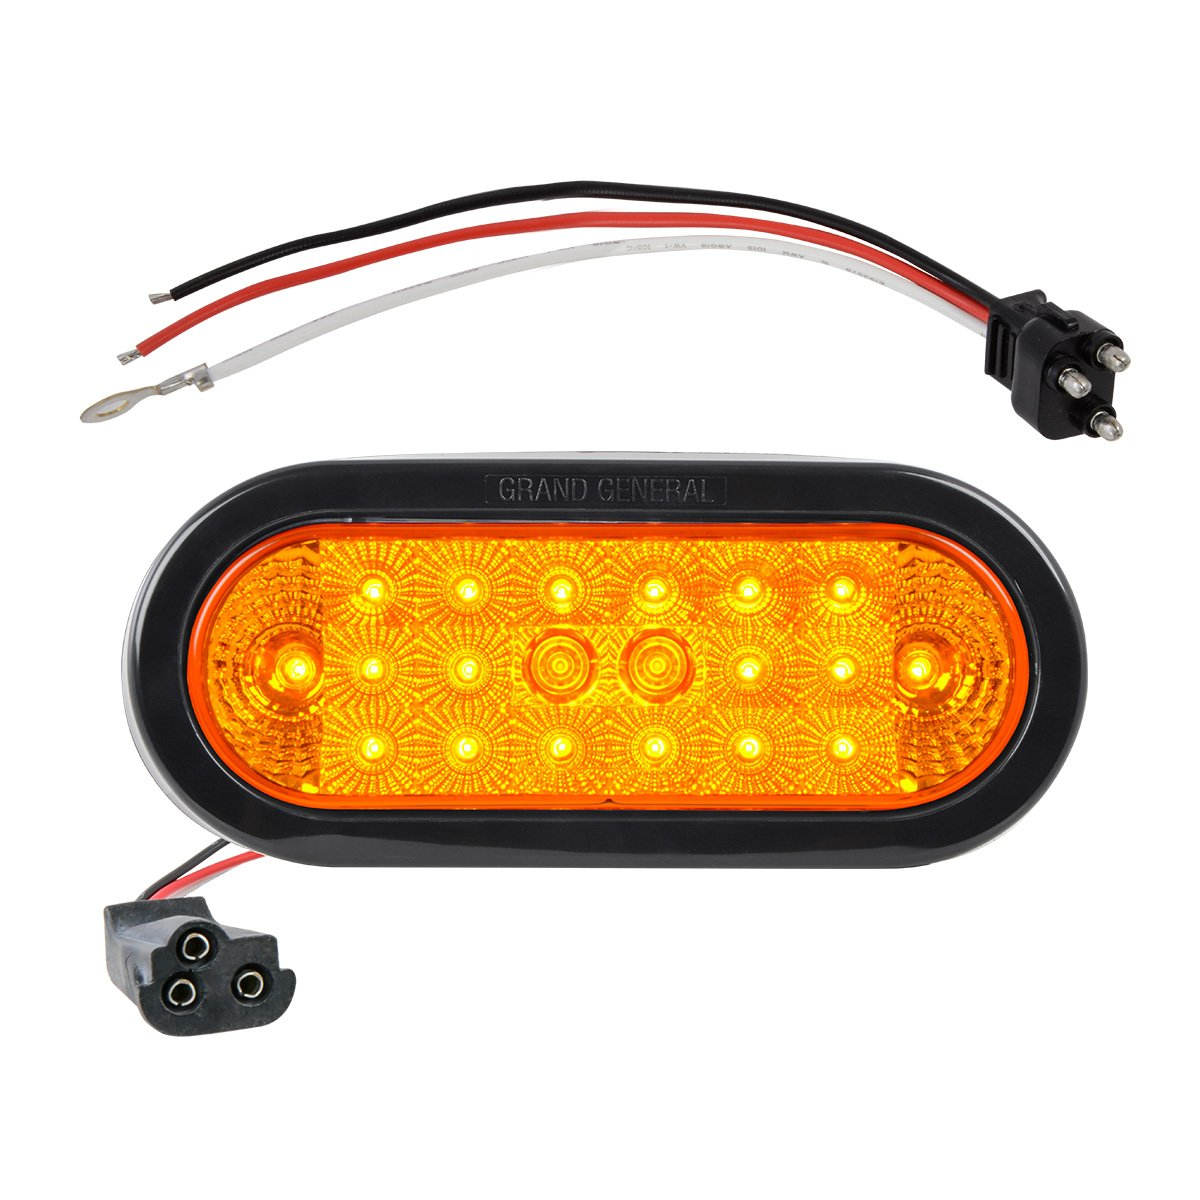 GG Grand General Grand General 77040BP Spyder 6'' Oval Amber LED Park/Turn/Clearance Includes Light, Grommet & Pigtail for Trucks, Trailers, RVs, Utility Vehicles